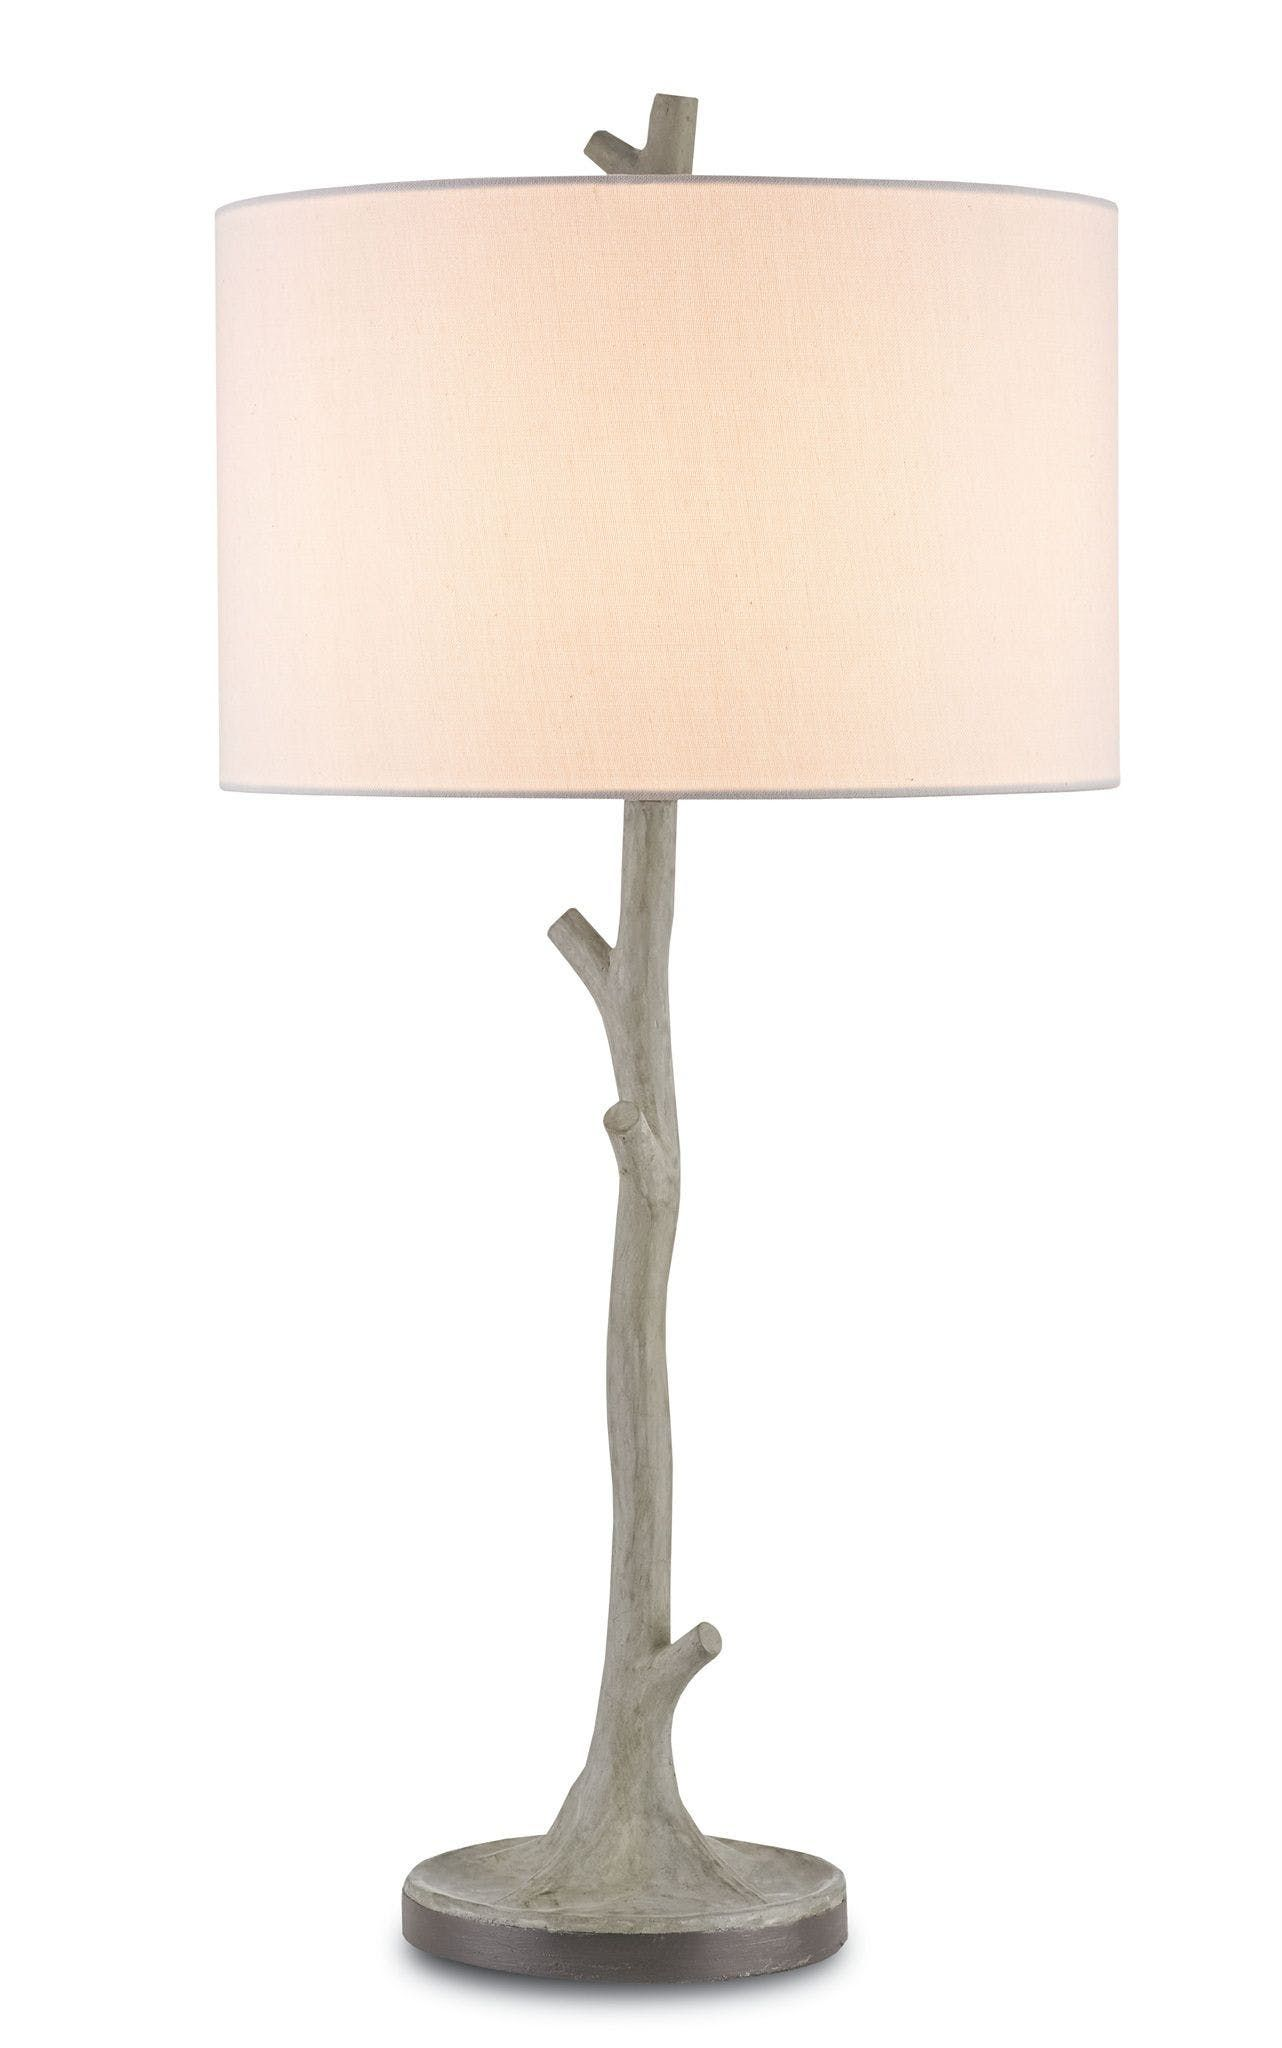 The Beaujon Table Lamp Is An Alluring Tribute To Nature Its Simple Form A Realistic